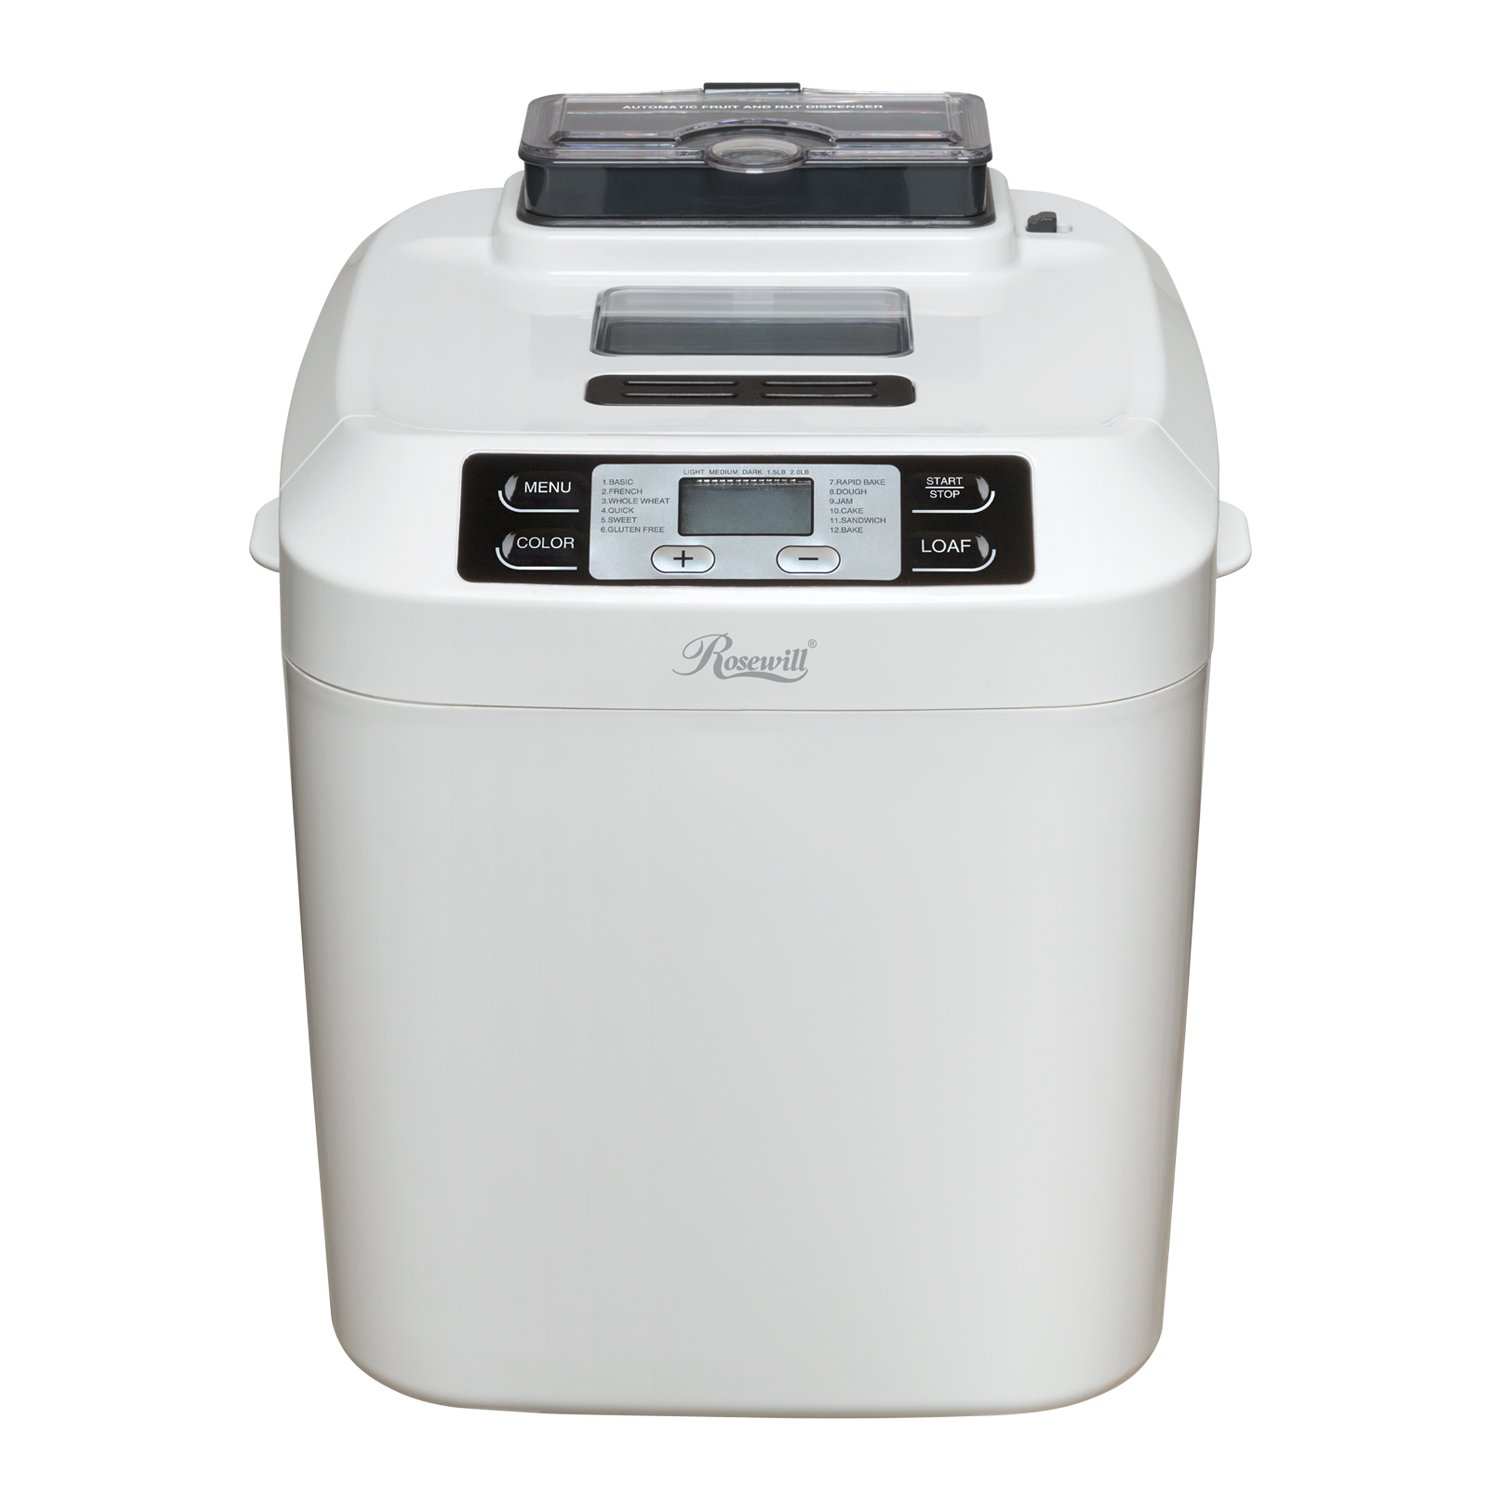 Rosewill R-HAP-01 Electric 4 L Hot Water Dispenser with Auto Feed ...